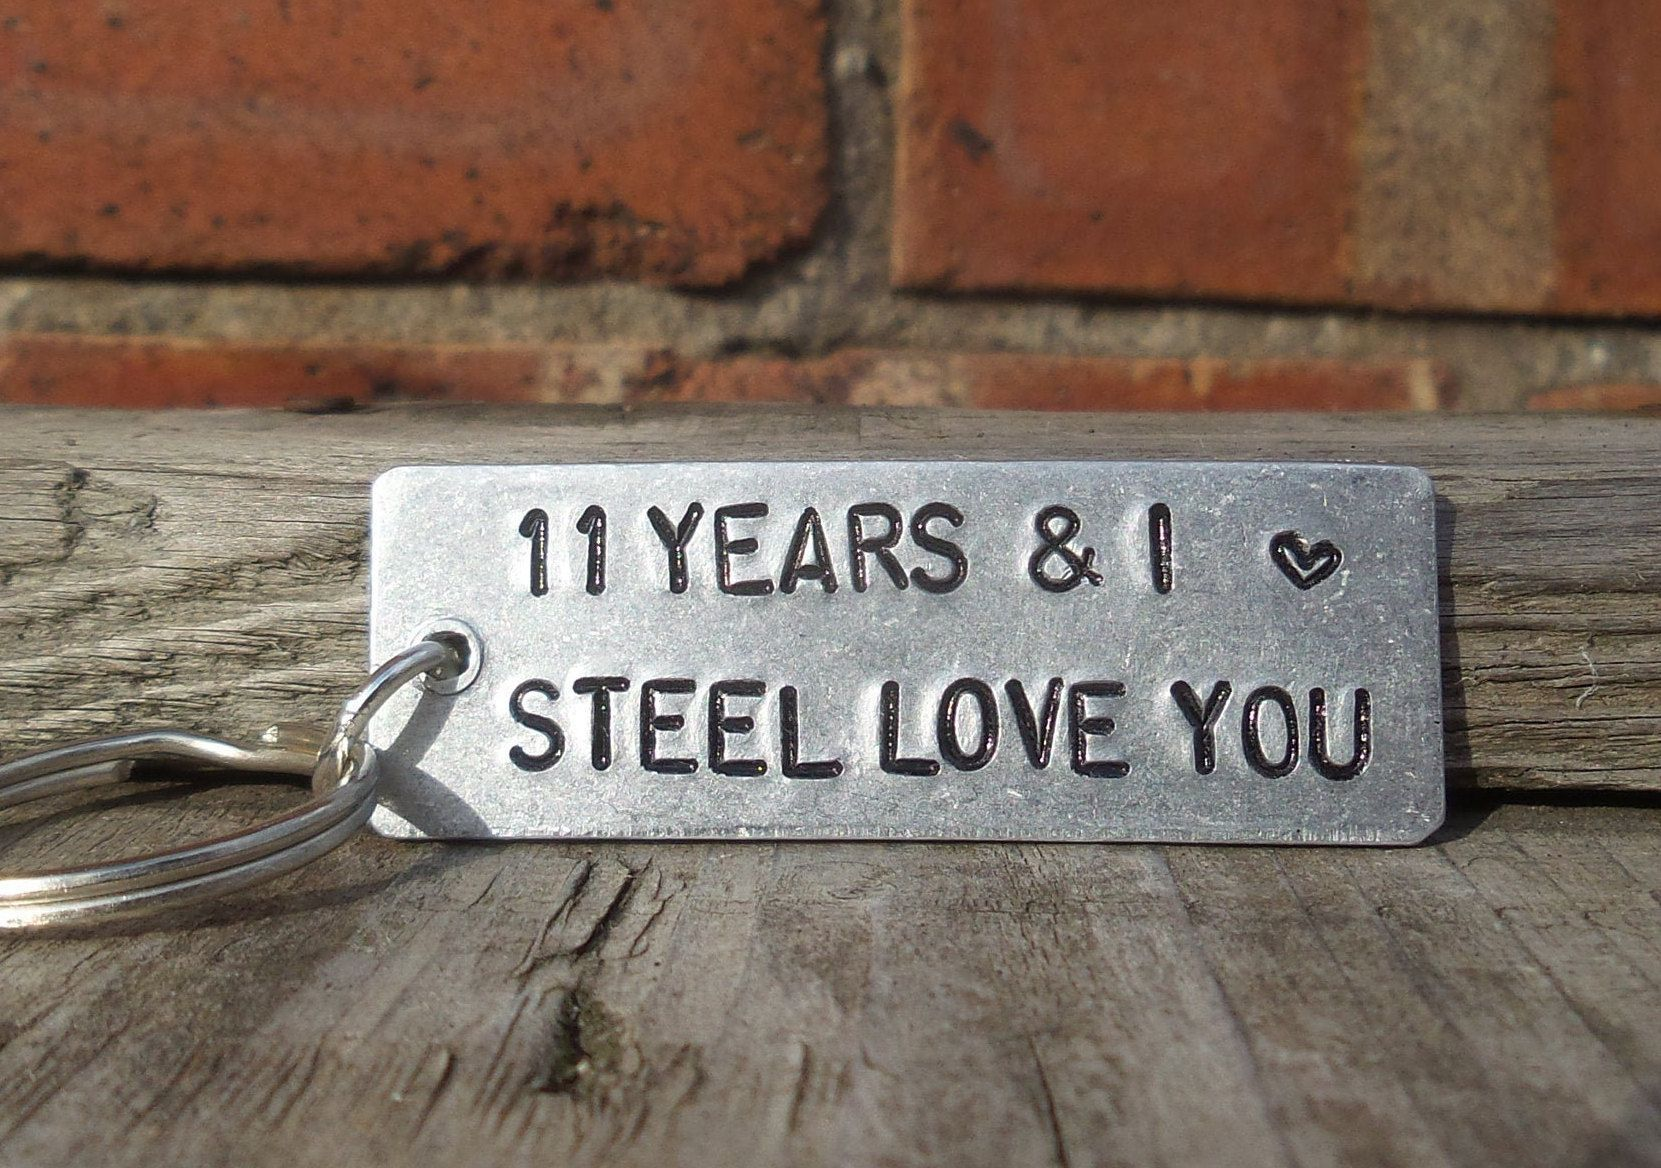 11 Years And I Steel Love You Personalised 11th Wedding Anniversary Gifts For Men Women Anniversary Husband Wife Traditi Steel Anniversary Gifts Anniversary Gifts For Parents 11 Year Anniversary Gift